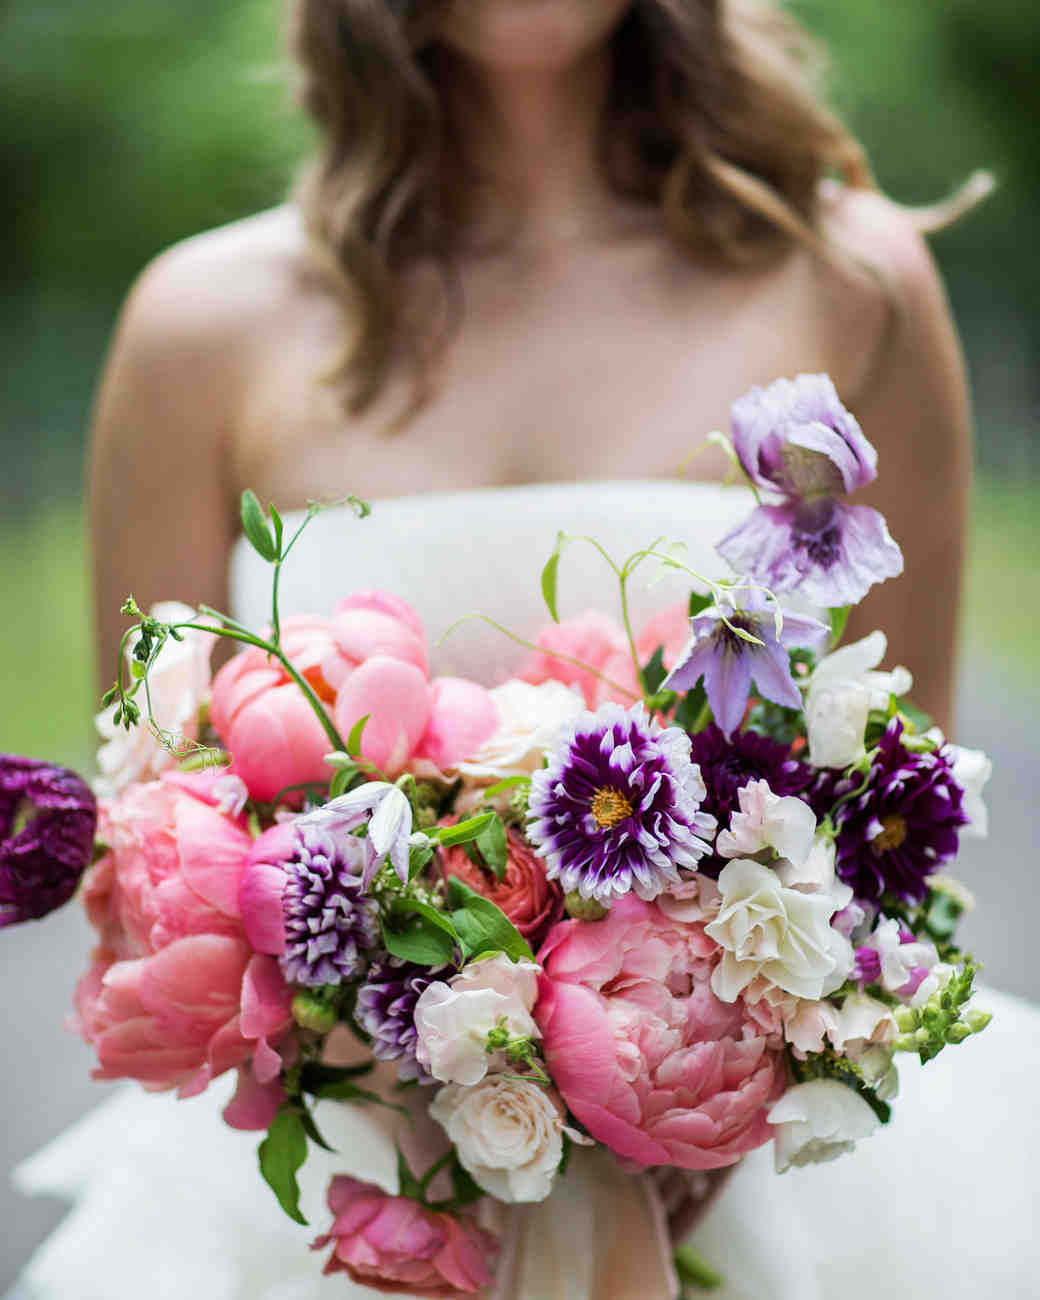 Wedding Flower Bouquet Designs